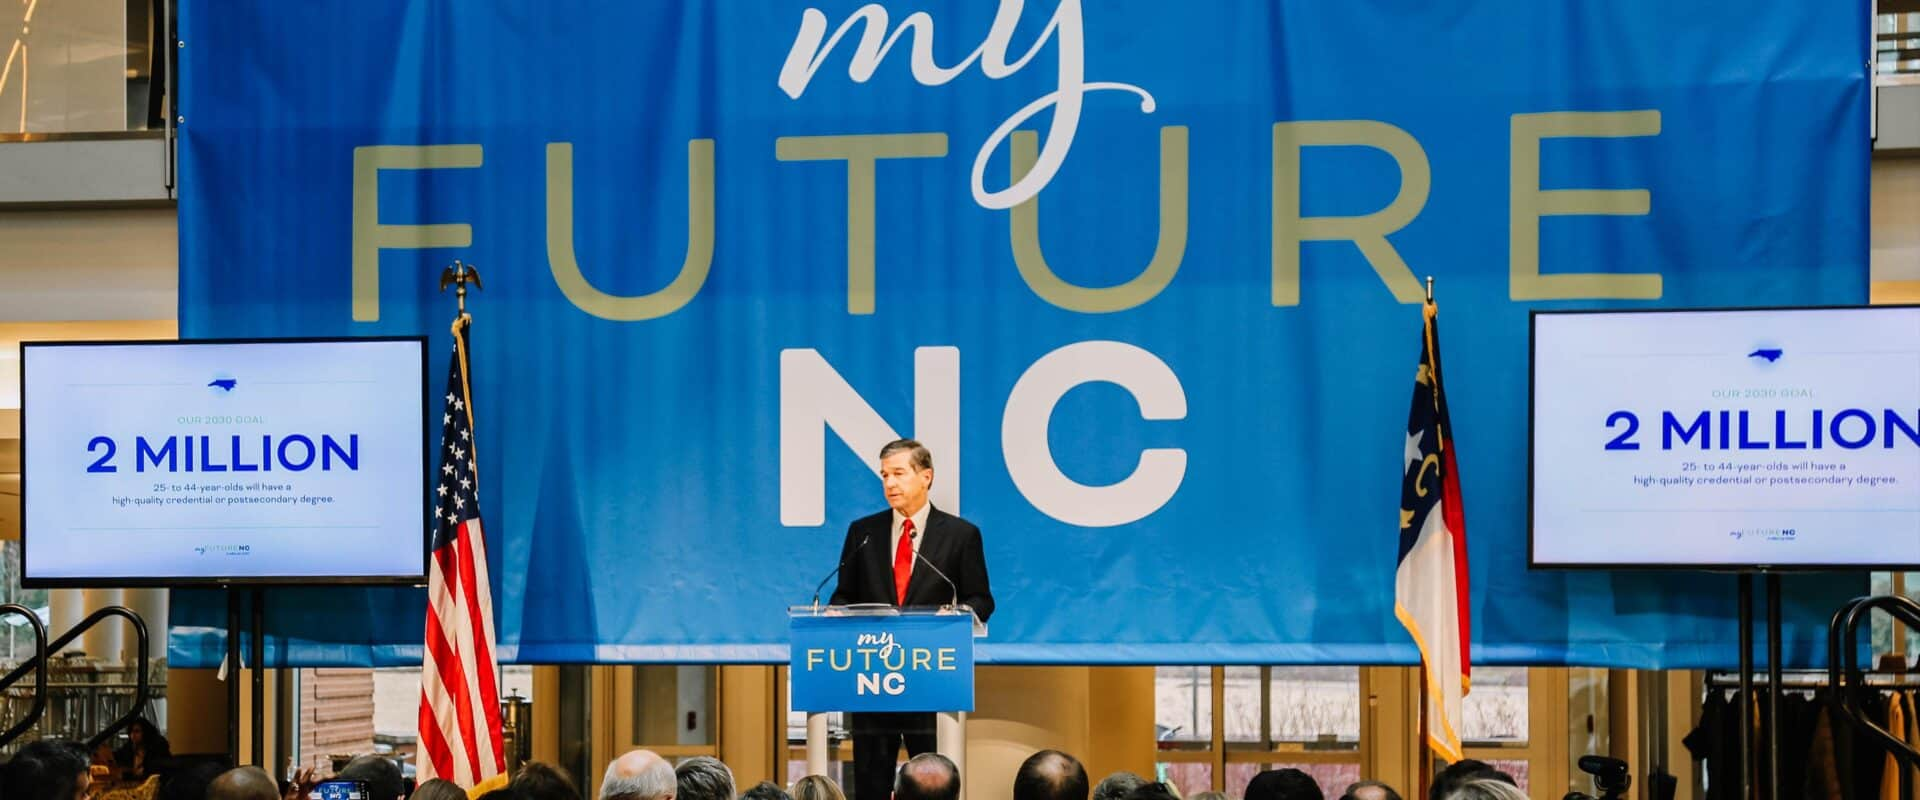 WPU, along with Governor Roy Cooper, attended the MyFutureNC conference in February 2019.